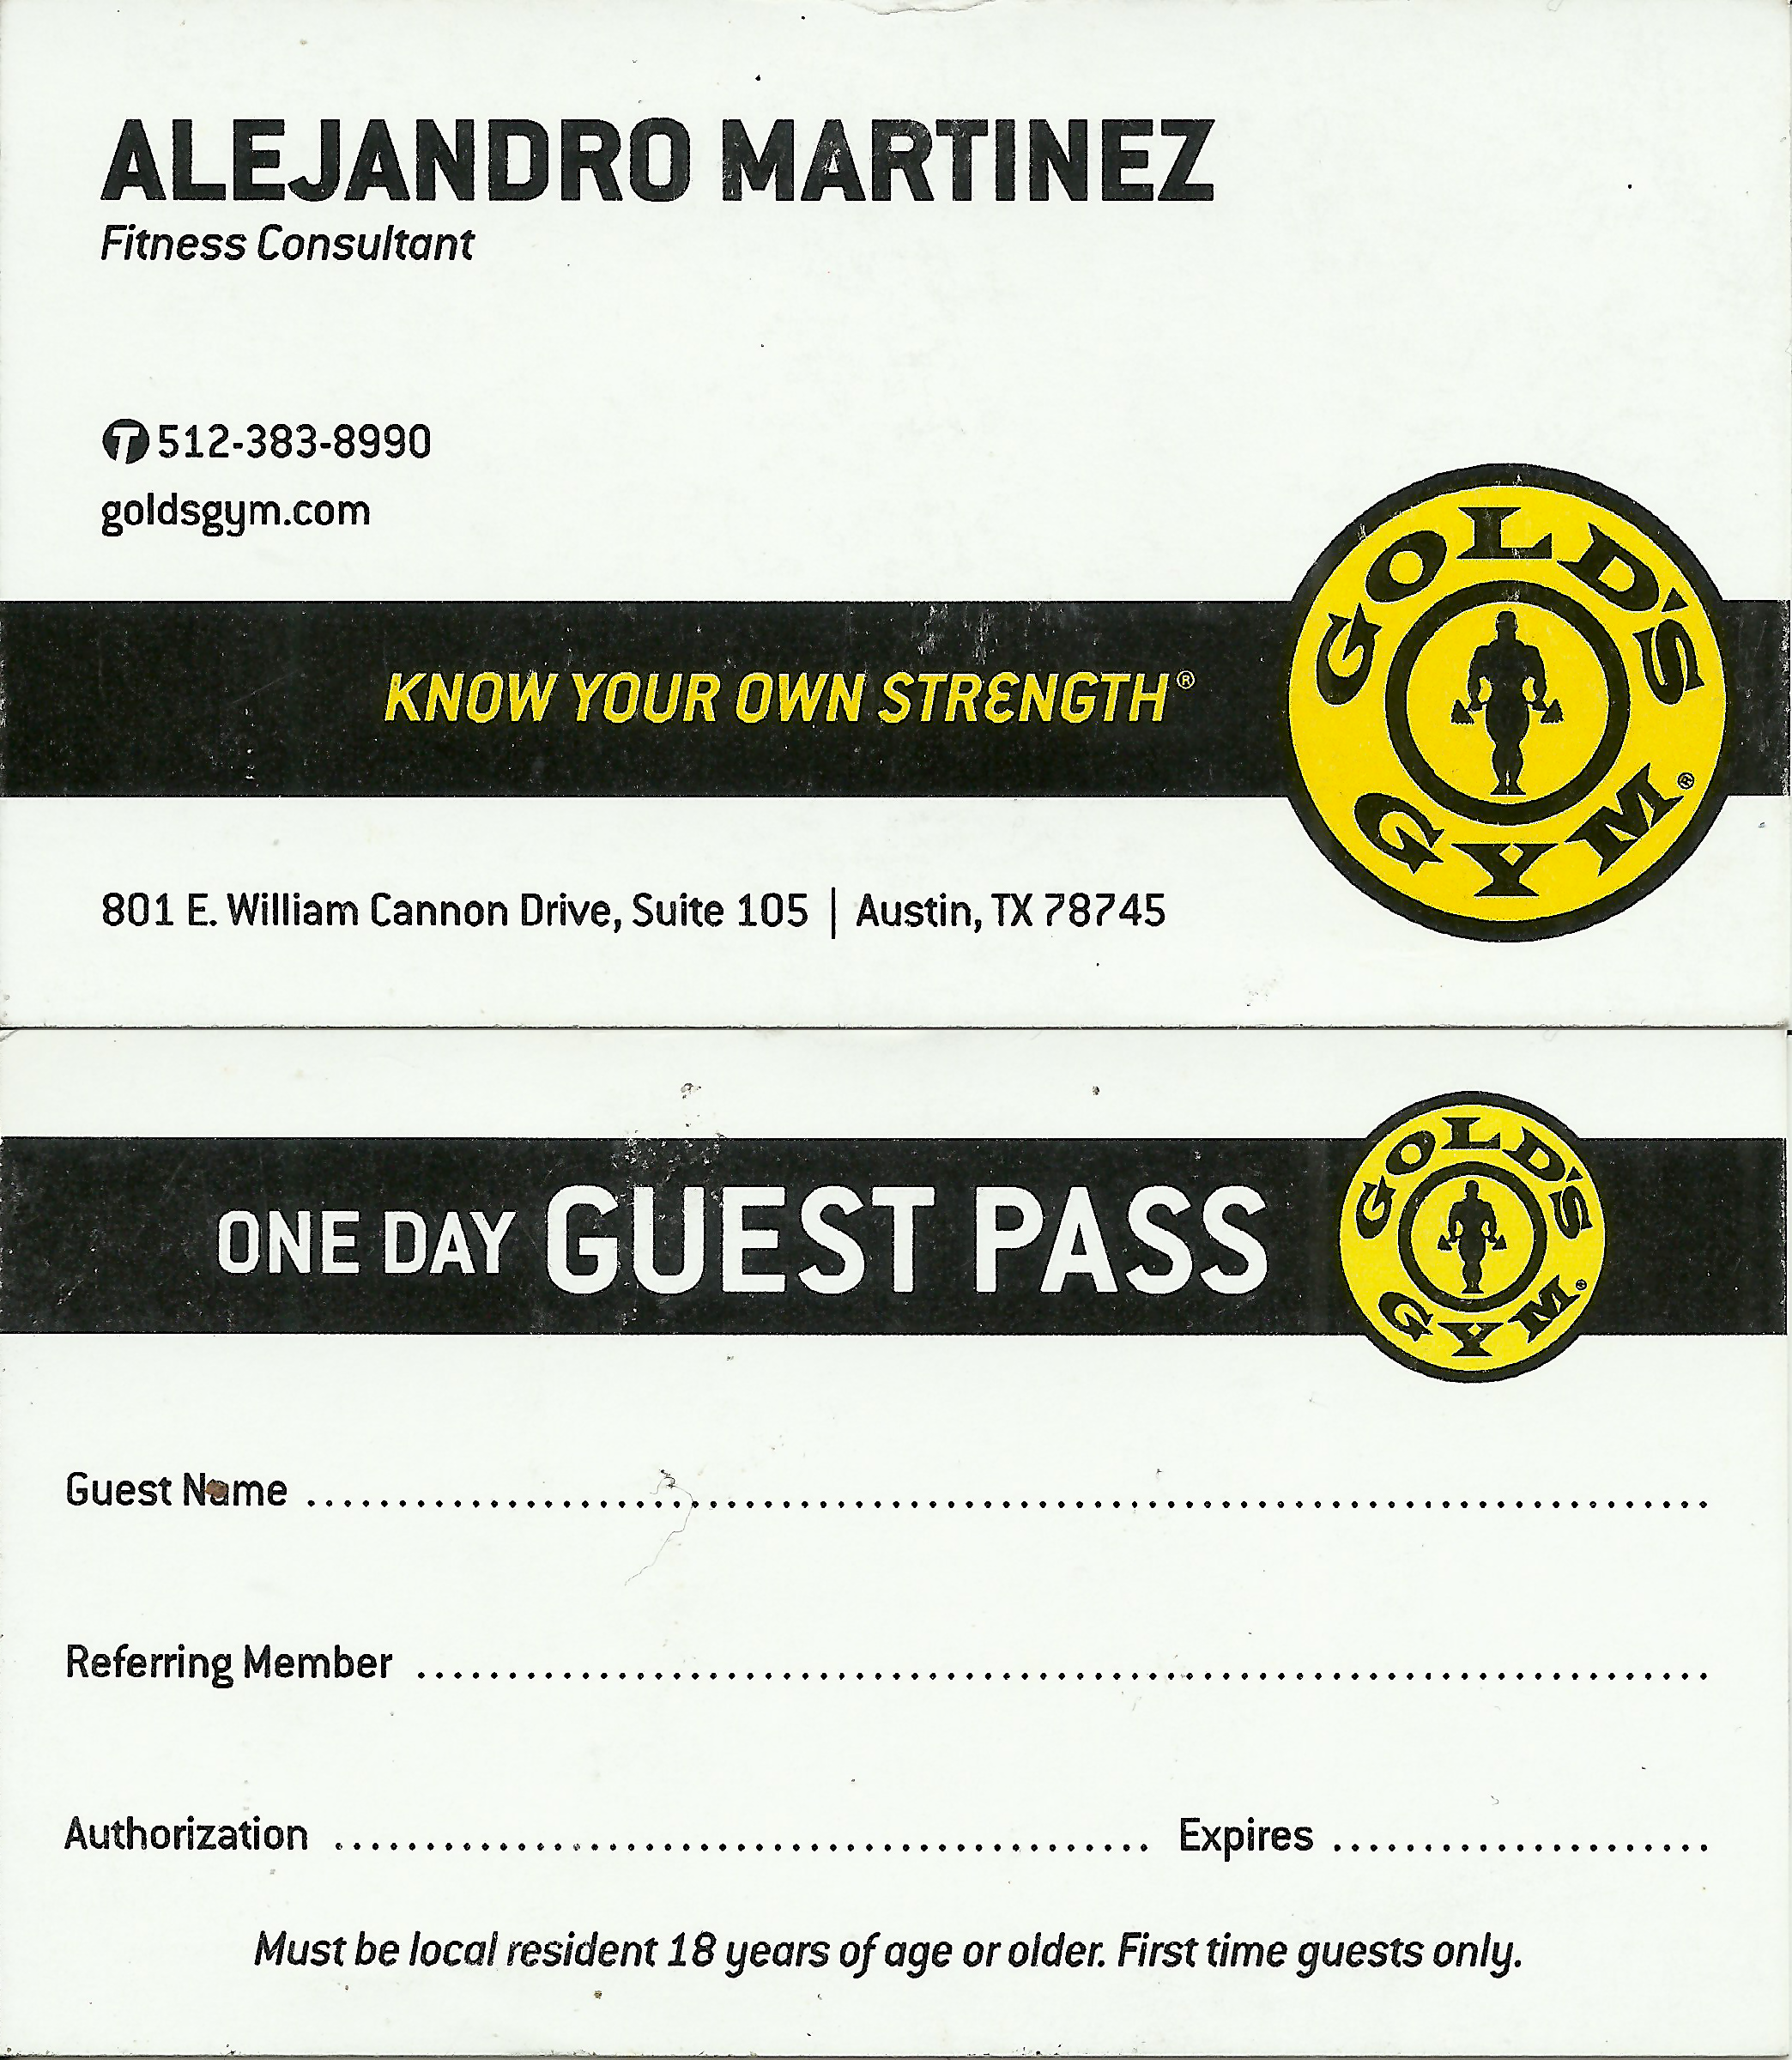 Alejandro Martinez Gold's Gym Business Card Example Graphic